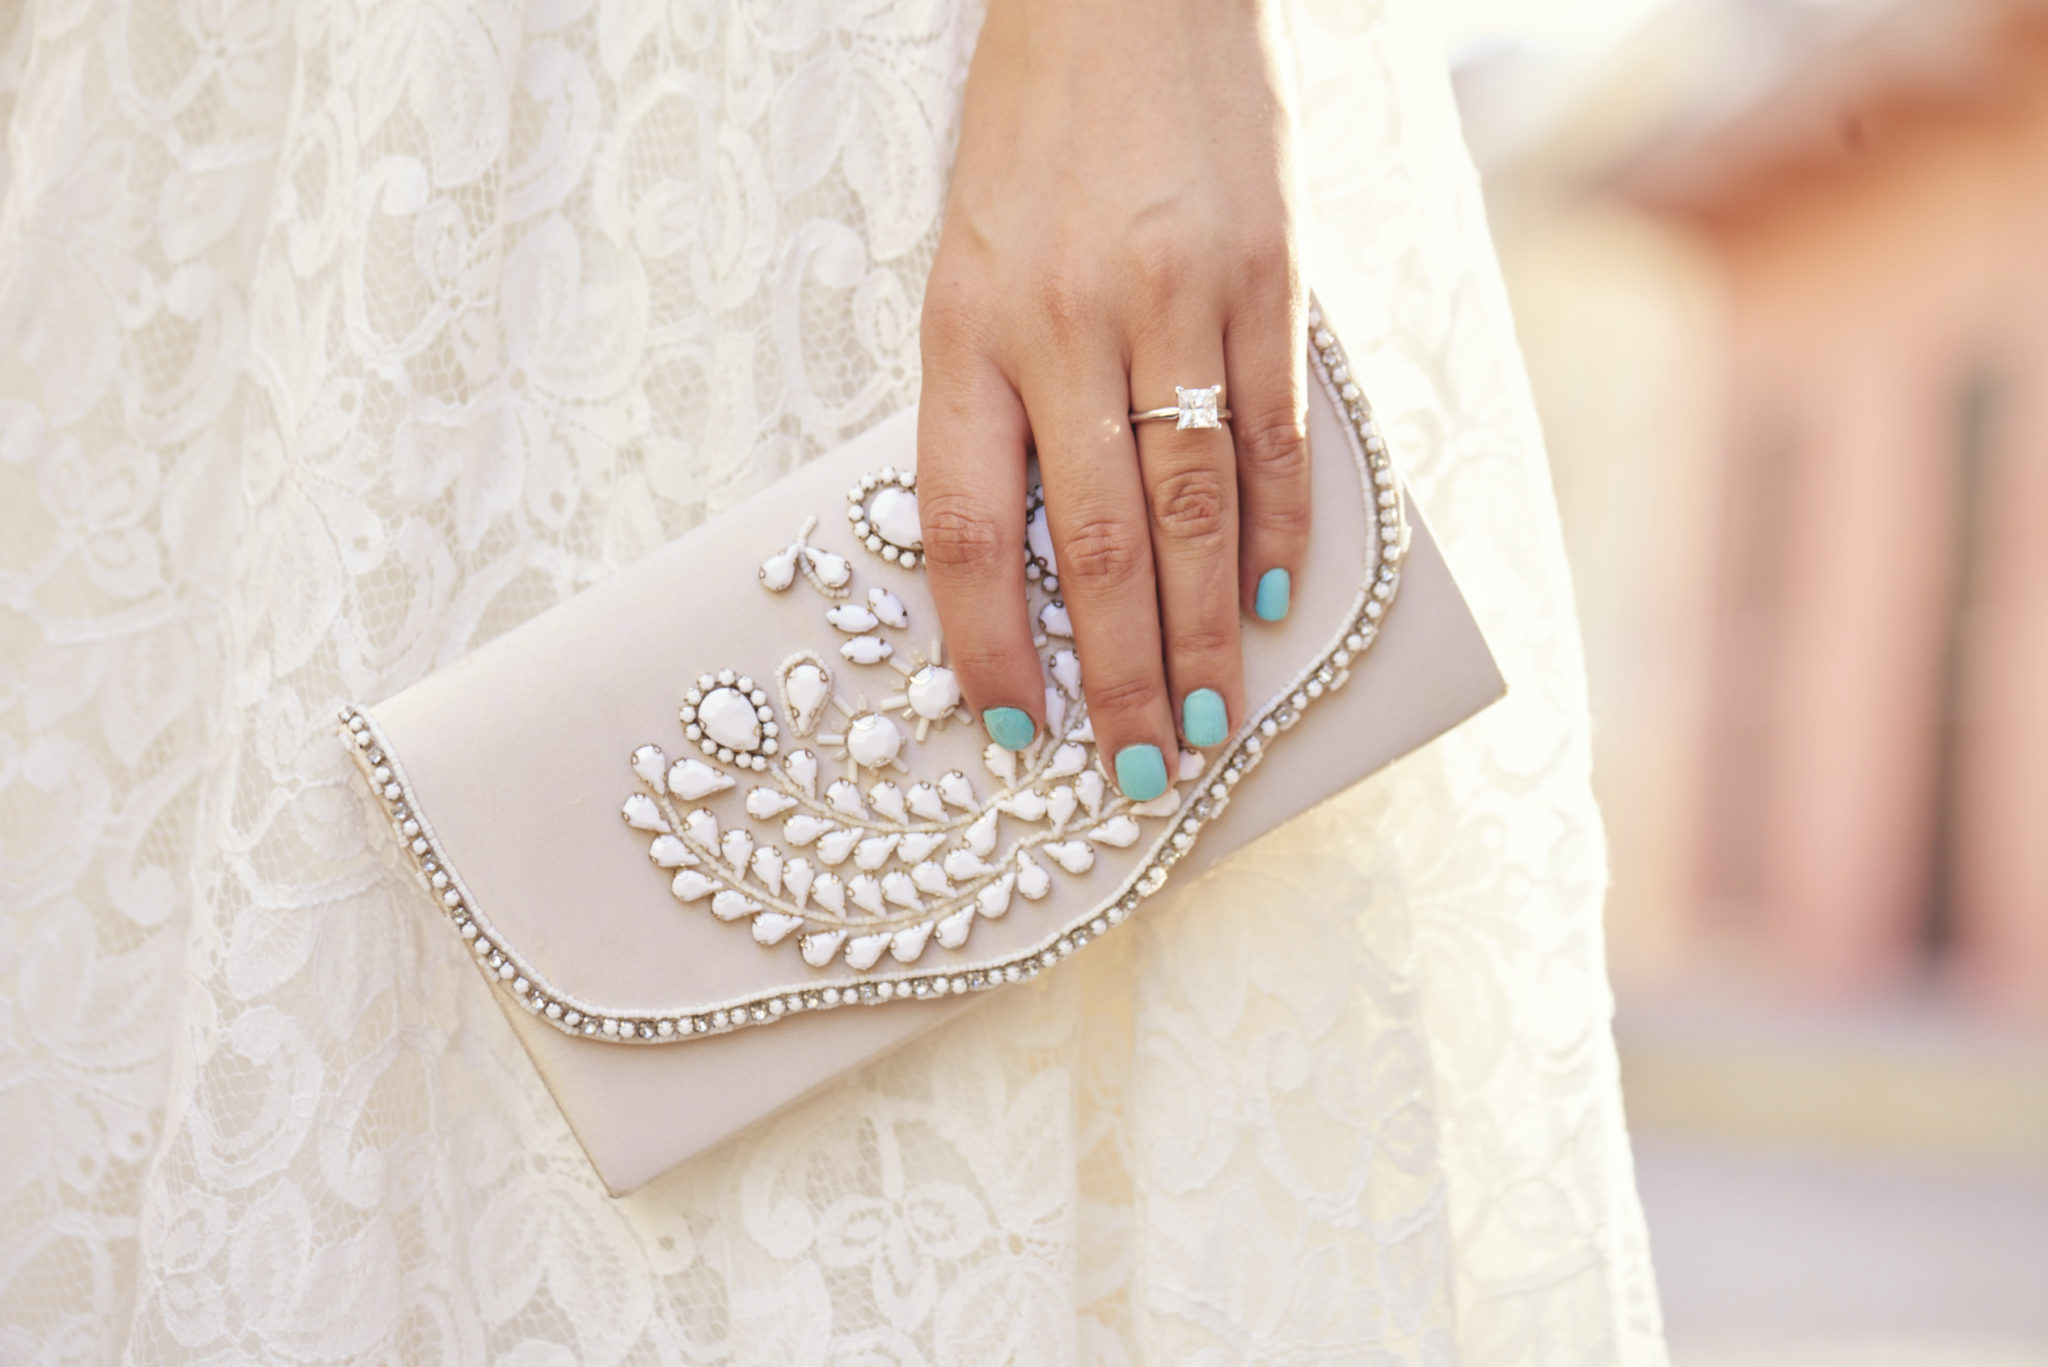 Hand with engagement ring holding beaded clutch